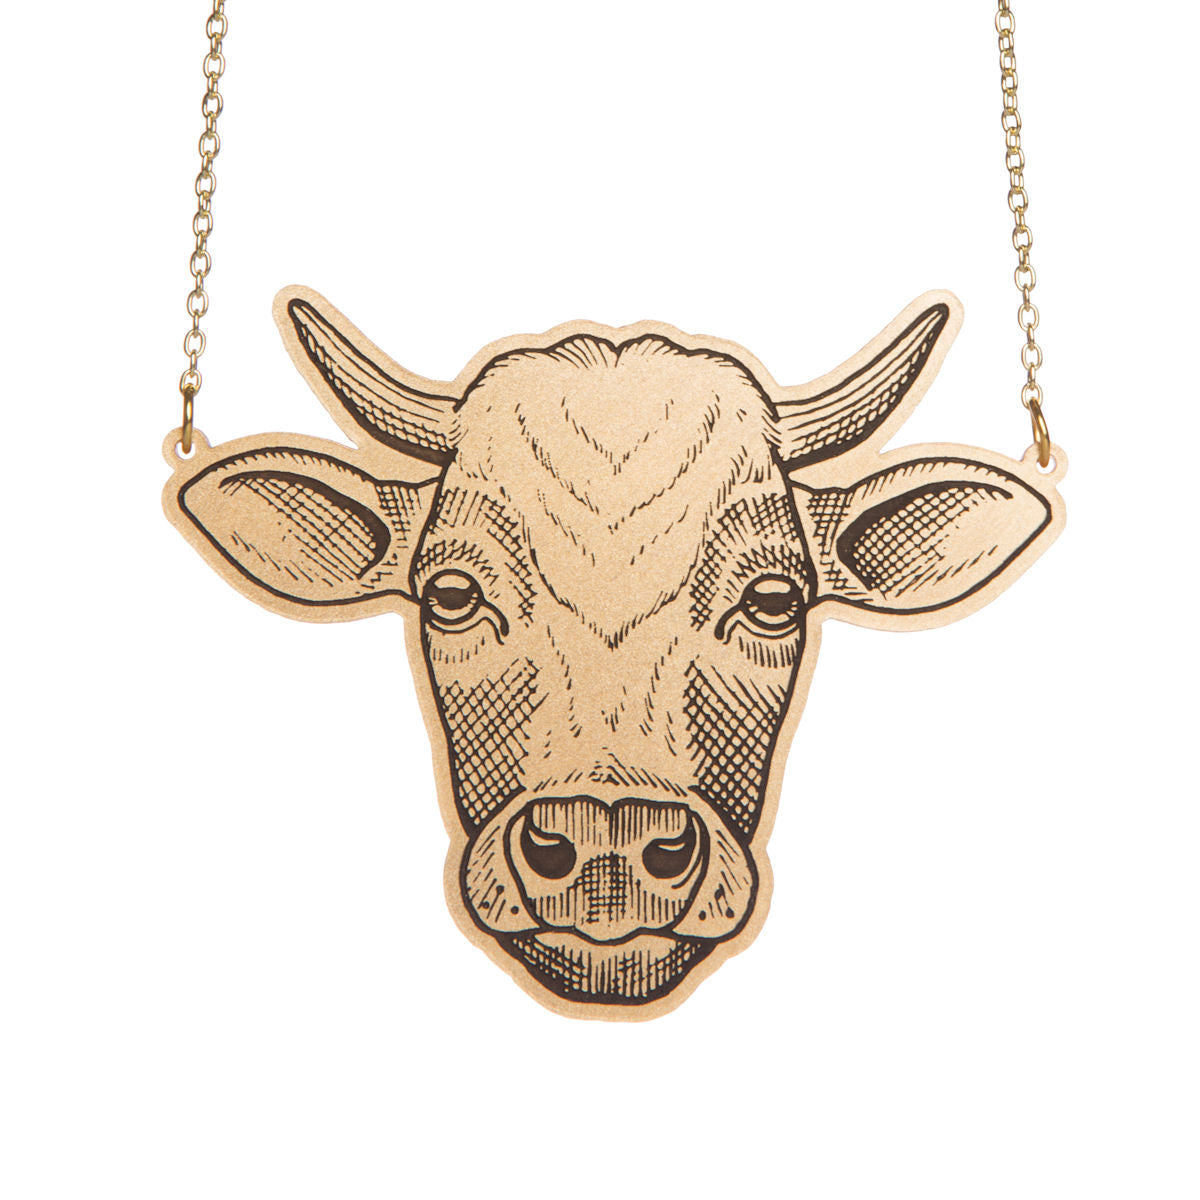 Amy Savage x Sugar & Vice Cow Necklace